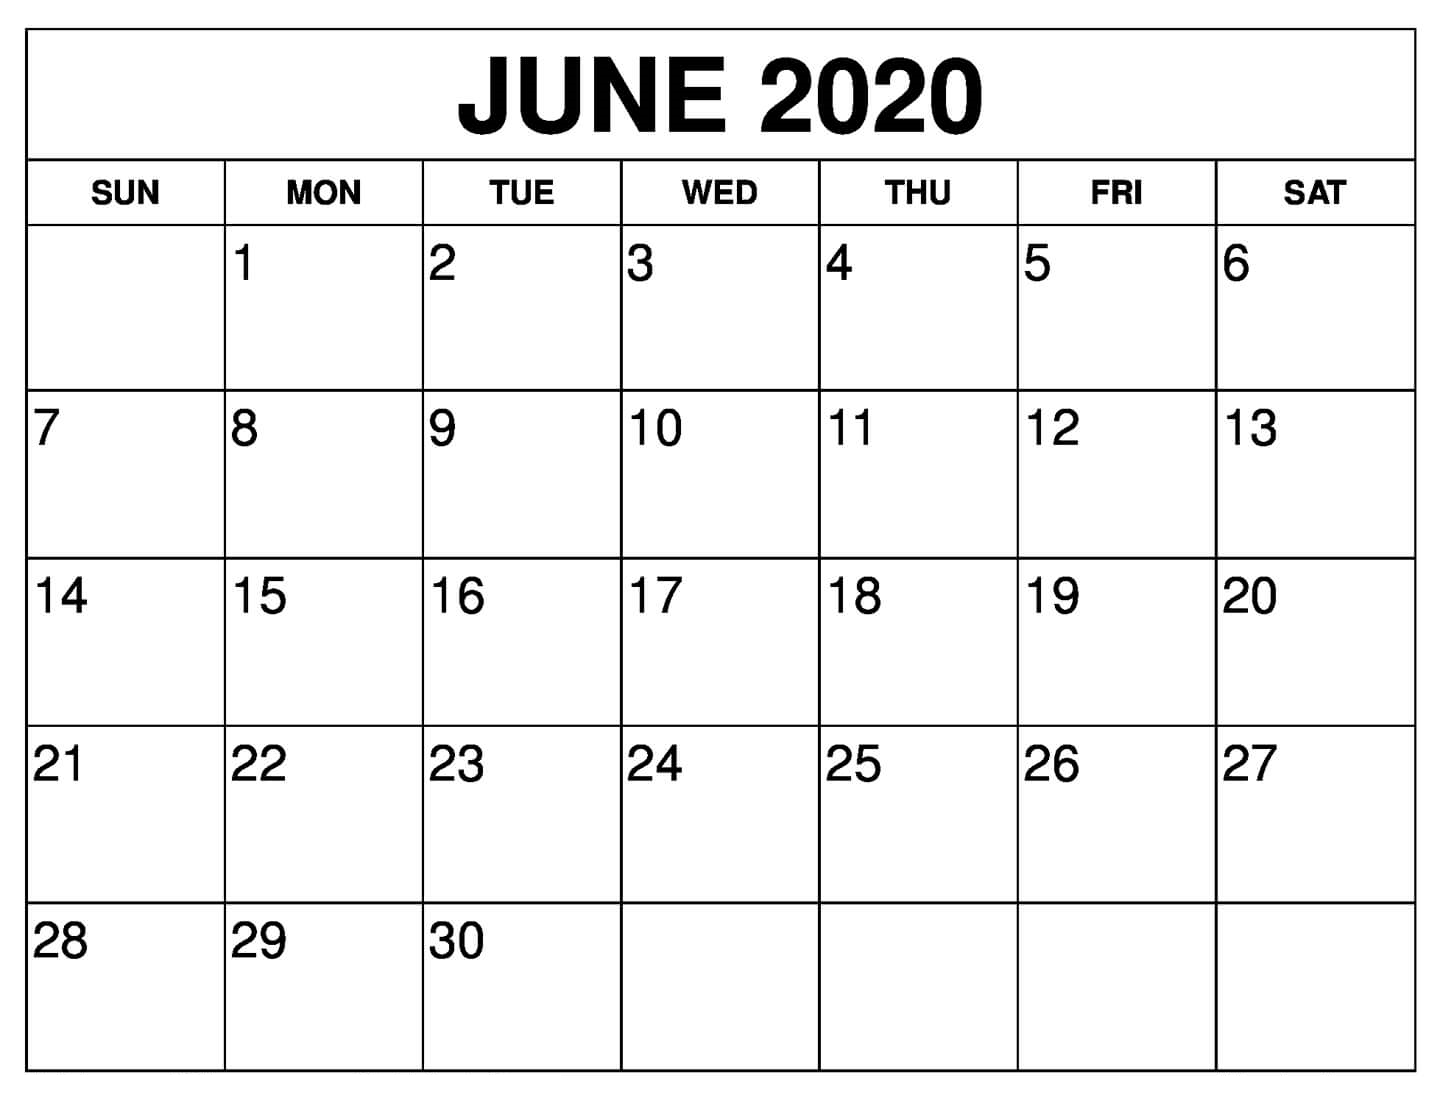 Free June 2020 Calendar Printable | 12 Month Printable Calendar intended for Printable June 2020 Calendar